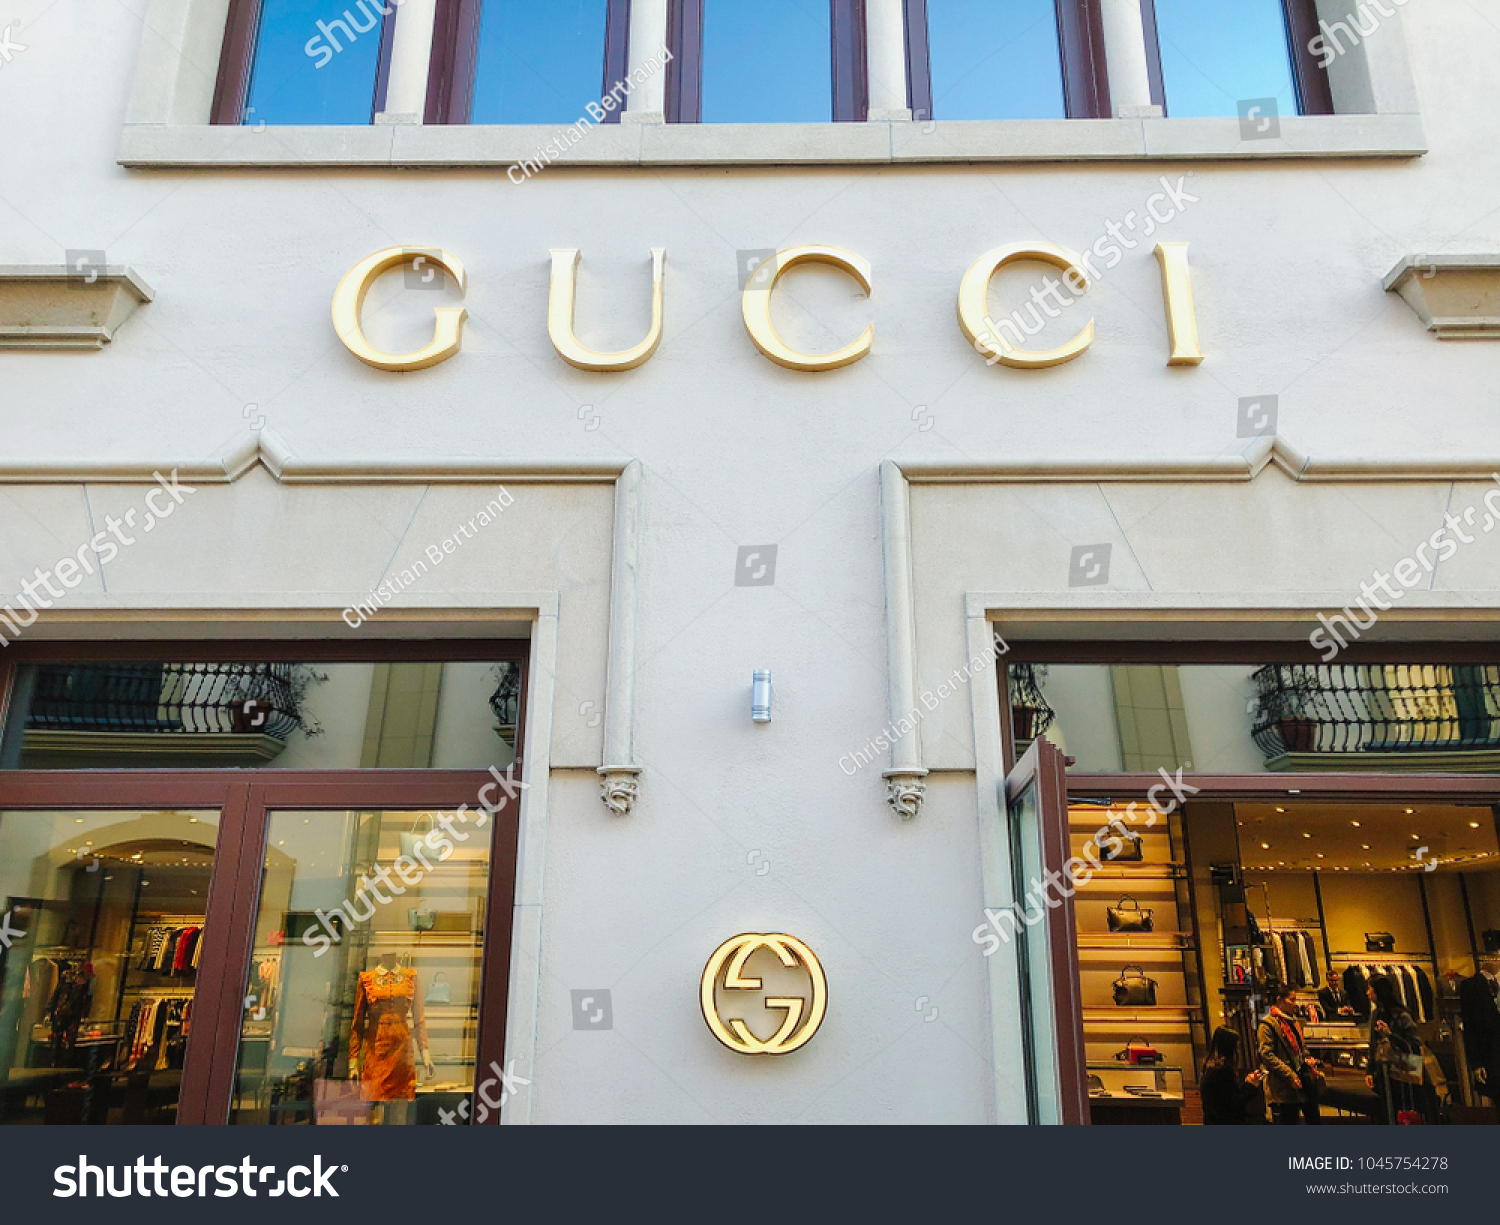 5223679a3 BARCELONA - MAR 13: The Gucci store at La Roca Village (Chic Outlet Shopping